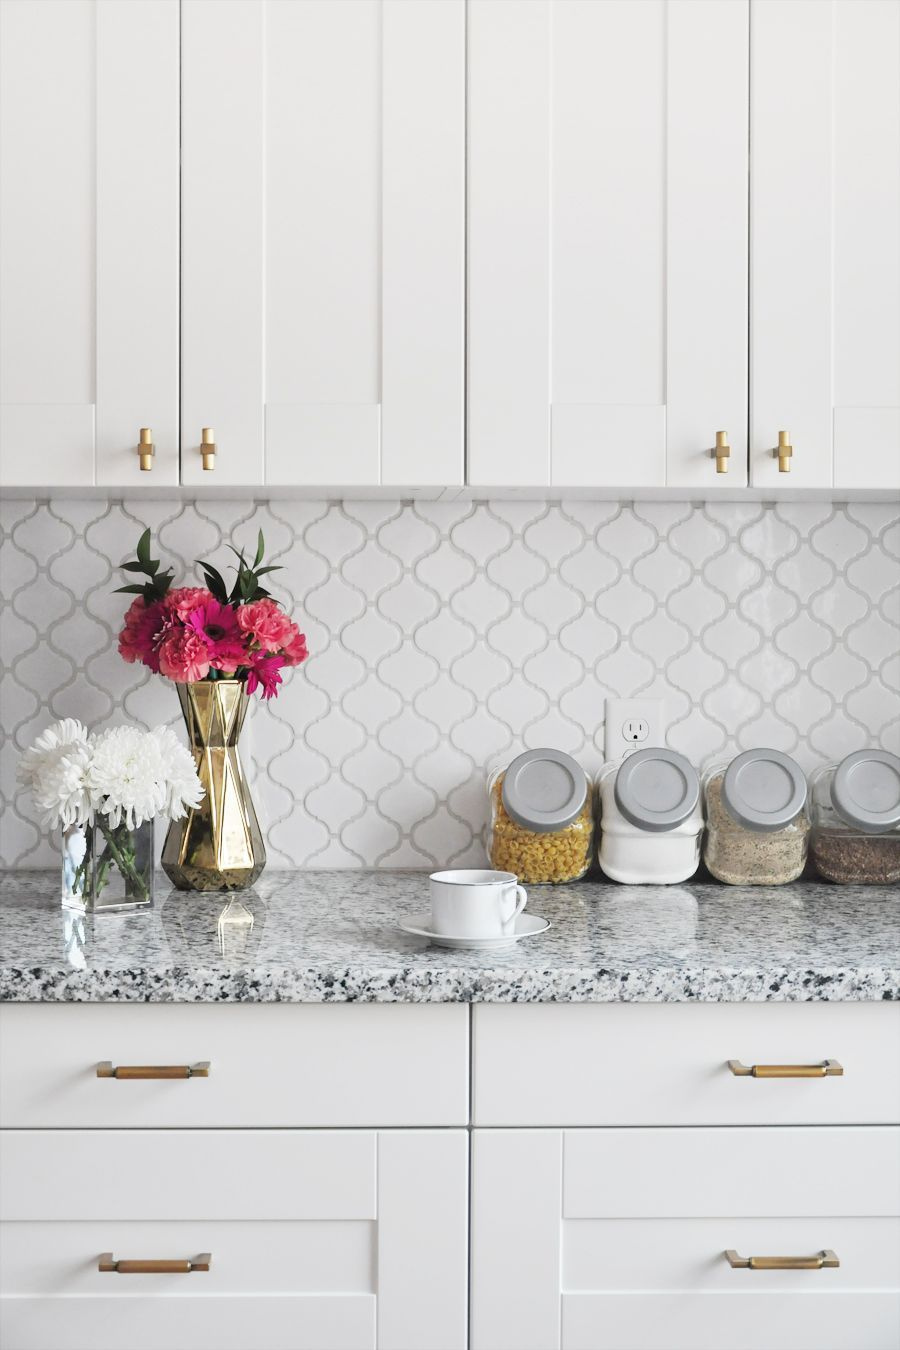 10 Best Ways To Install New Kitchen Backsplash Easy Tips To Follow